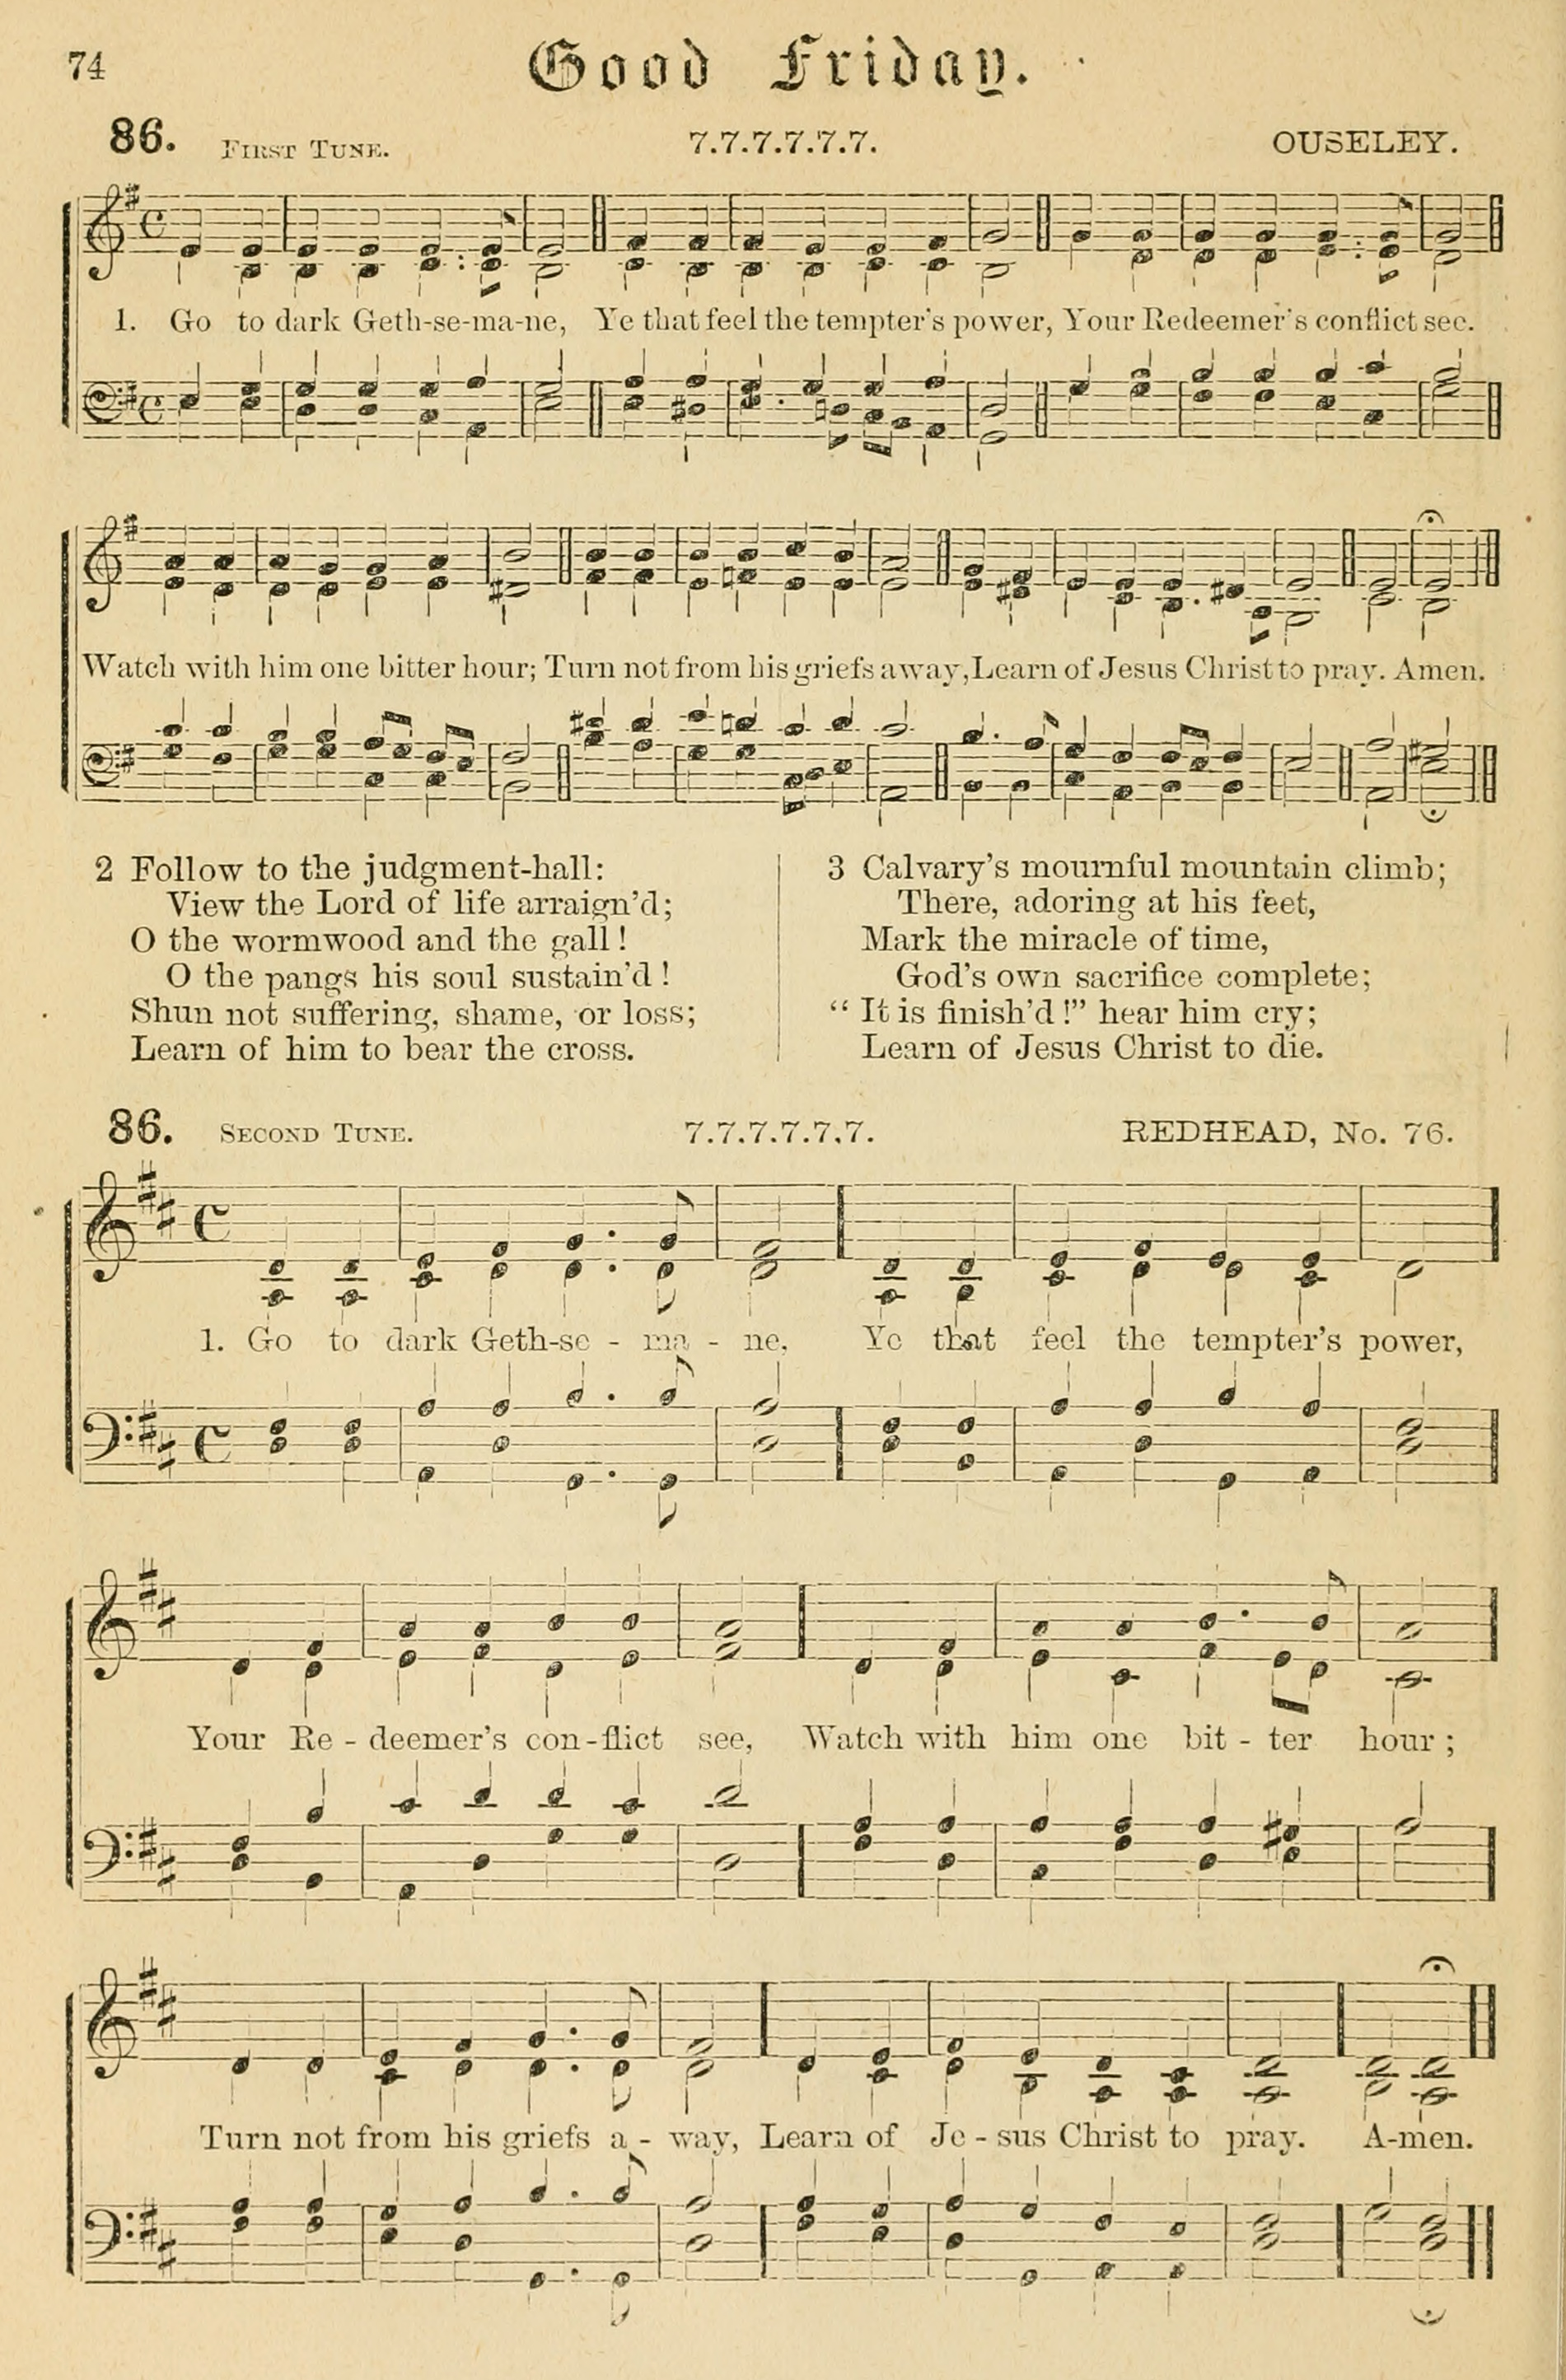 Fig. 5.   Hymnal of the Protestant Episcopal Church with Music , ed. A.B. Goodrich & Walter B. Gilbert (NY: E.P. Dutton, 1872).